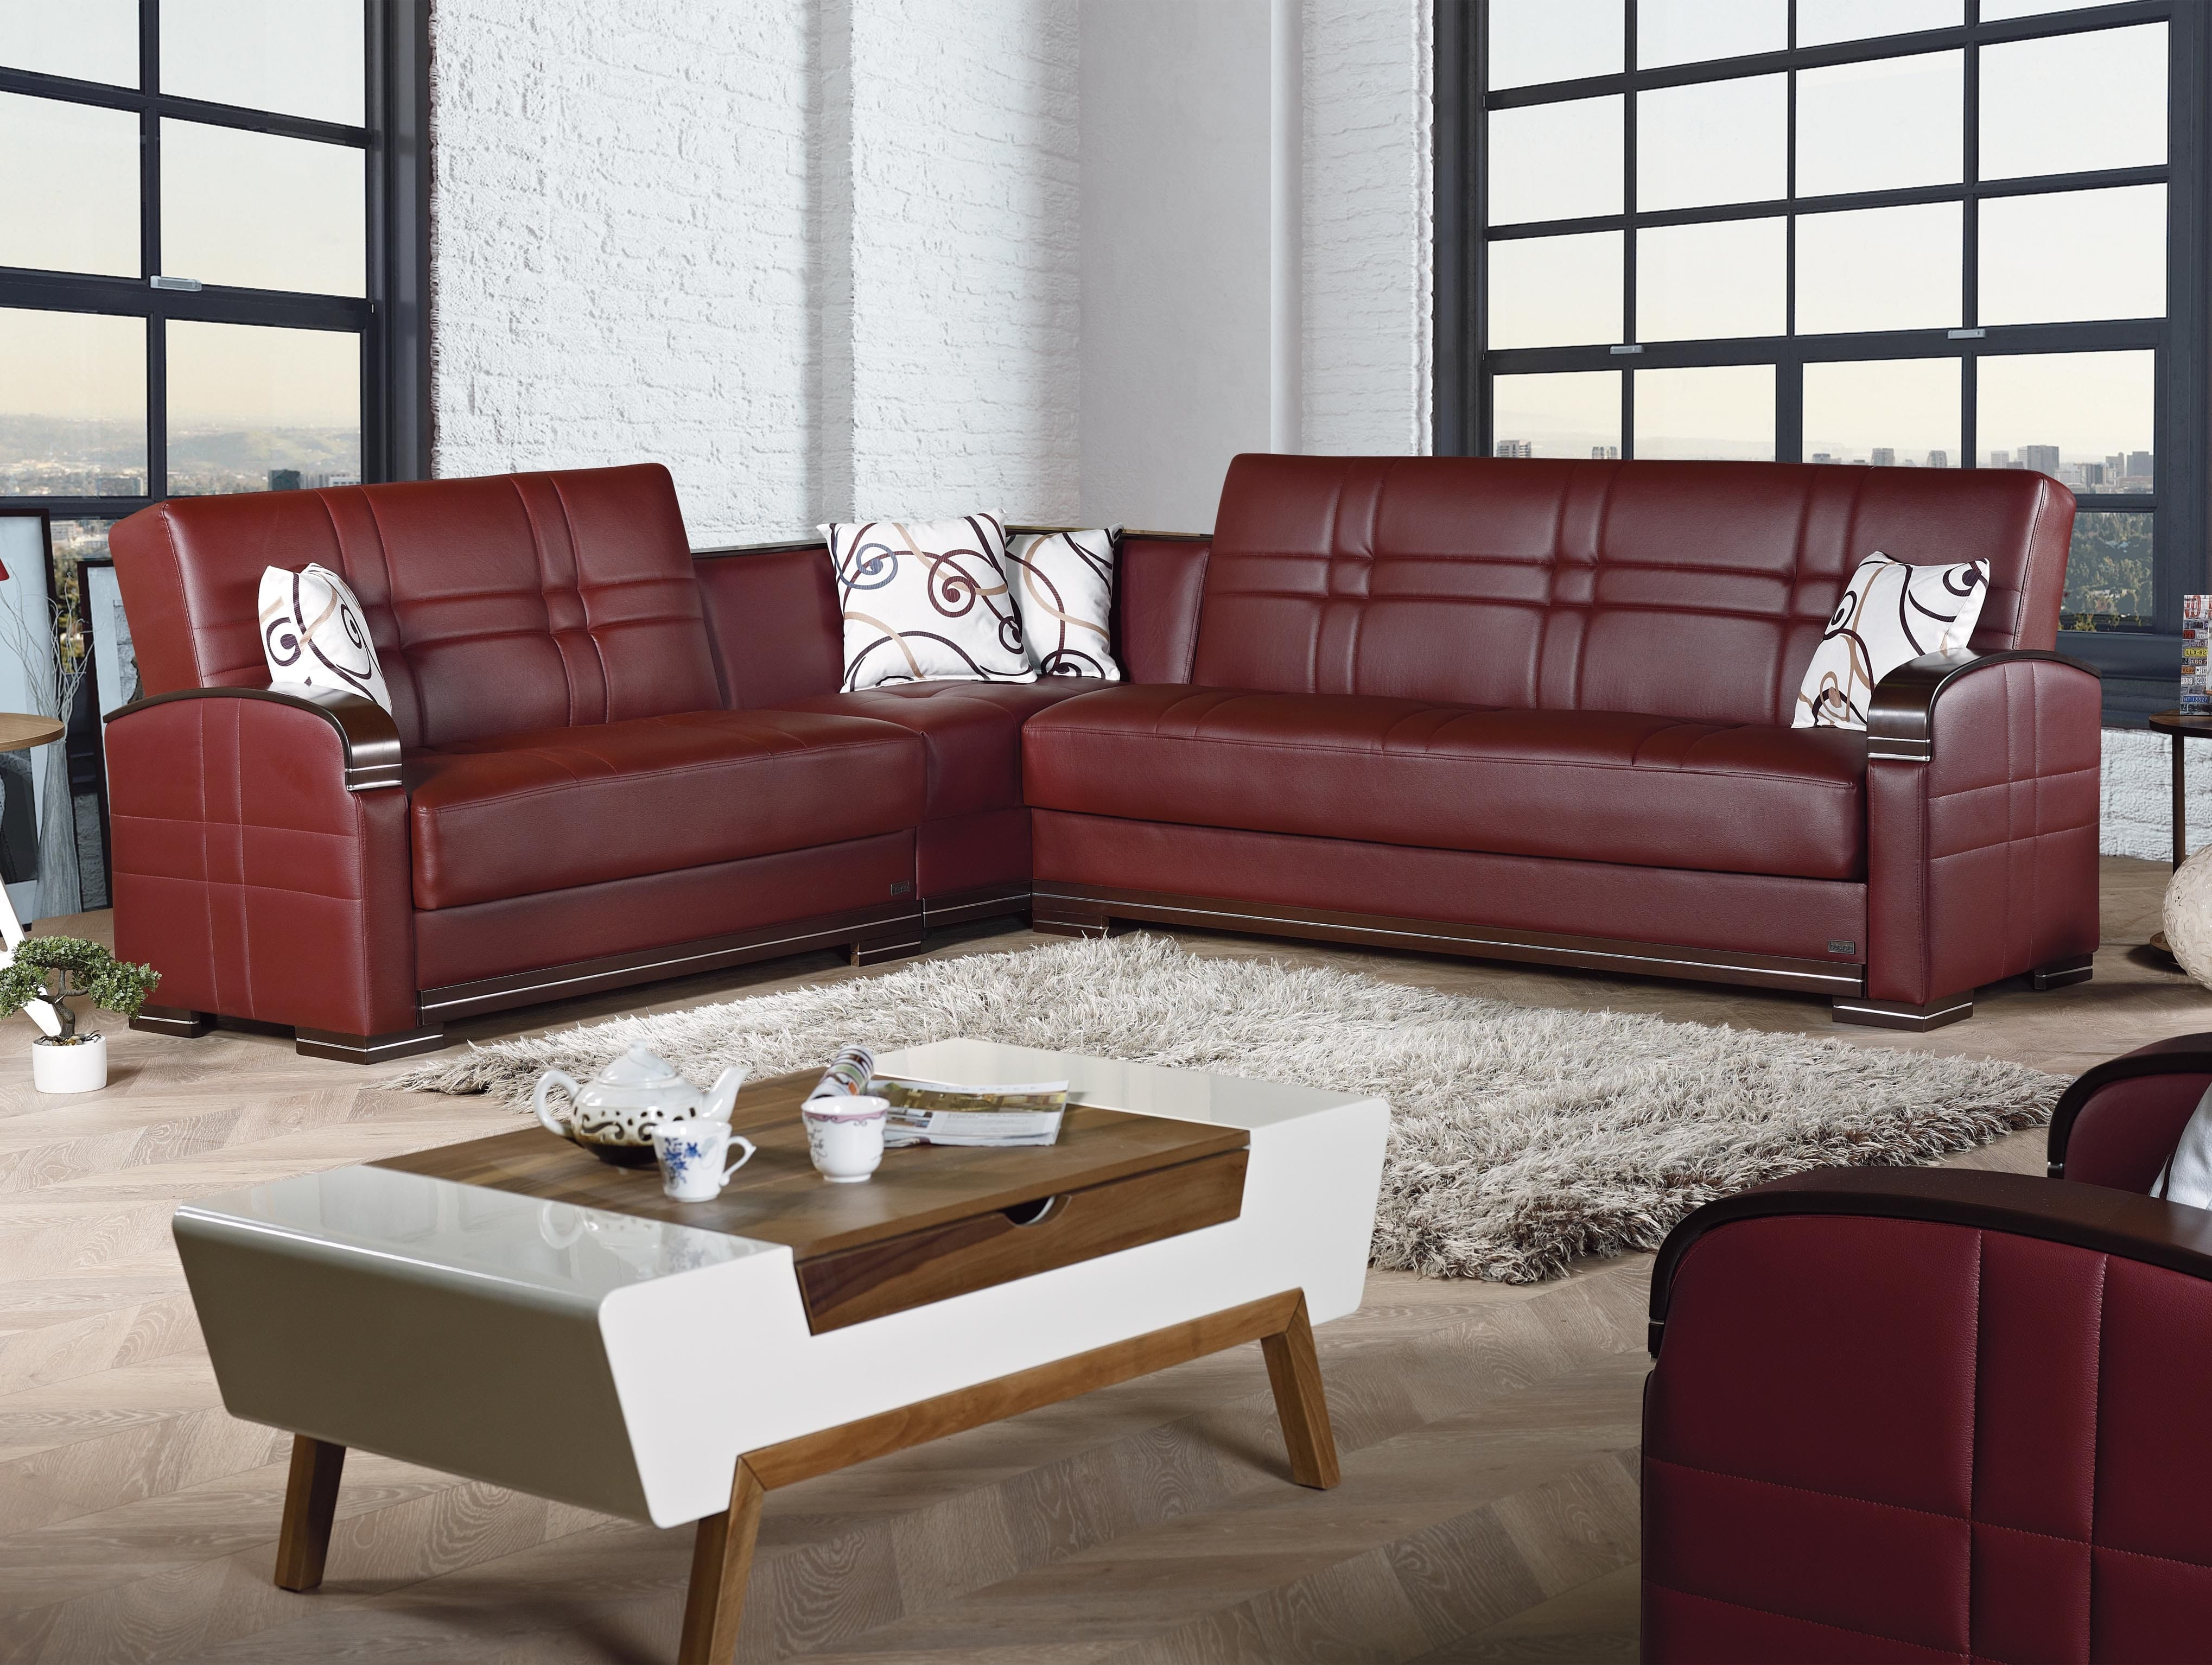 Manhattan Burgundy Leather Sectional Sofa By Empire